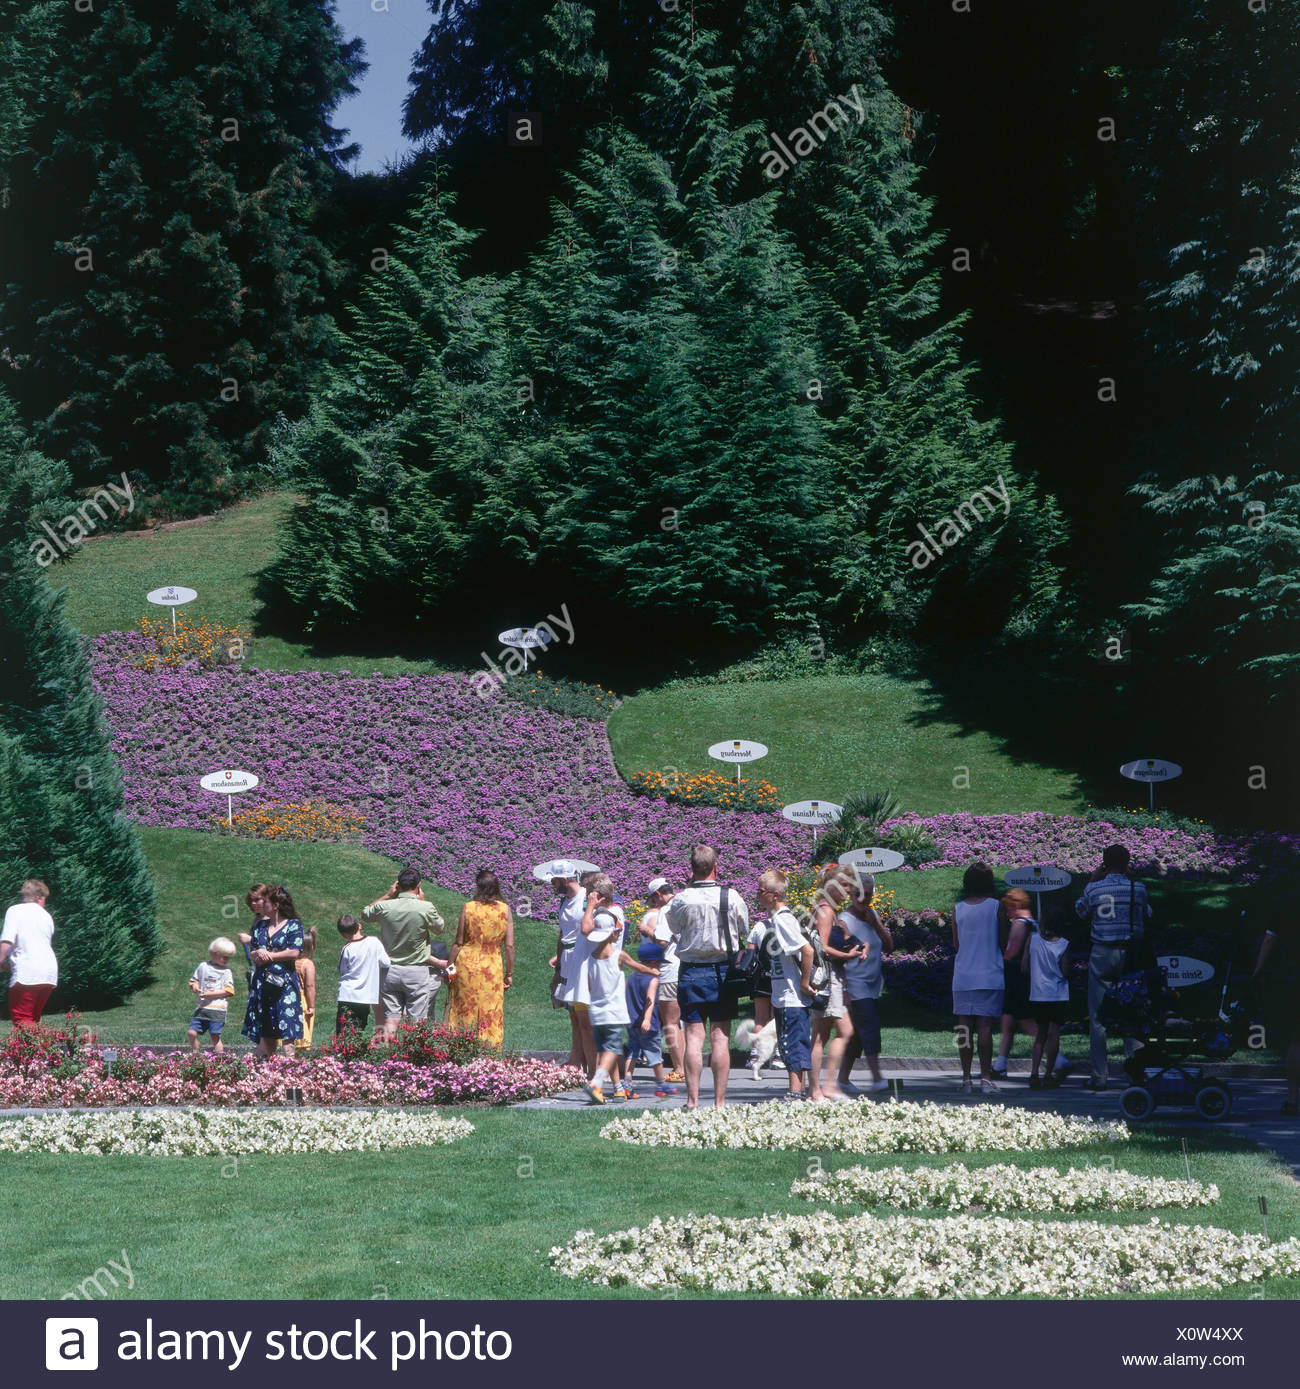 Tourists at formal gardens, Insel Mainau, Baden-Wurttemberg, Germany - Stock Image